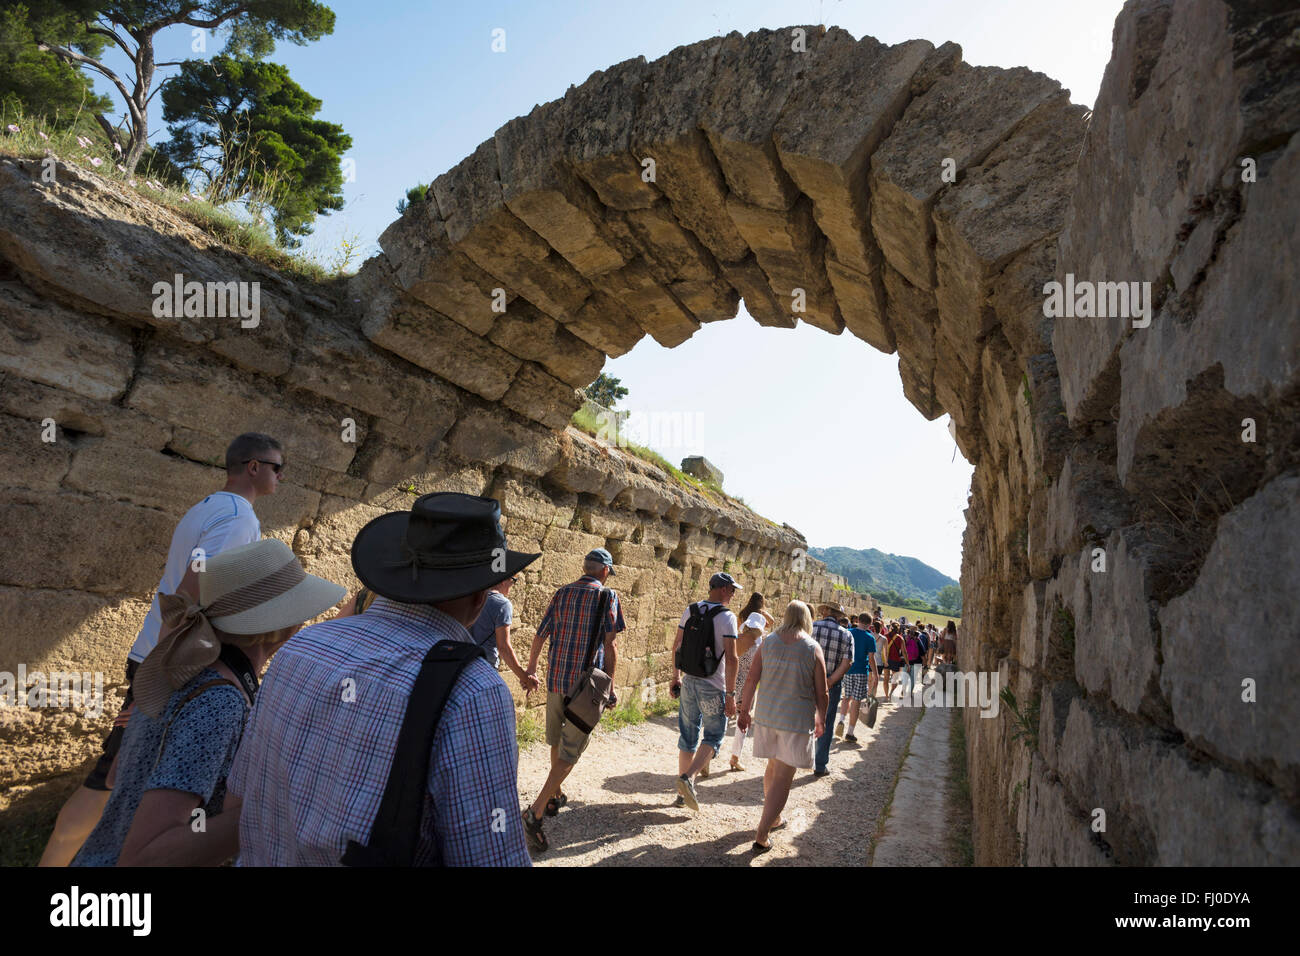 Olympia, Peloponnese, Greece.  Ancient Olympia.  Entrance leading to stadium where athletic events were held. - Stock Image